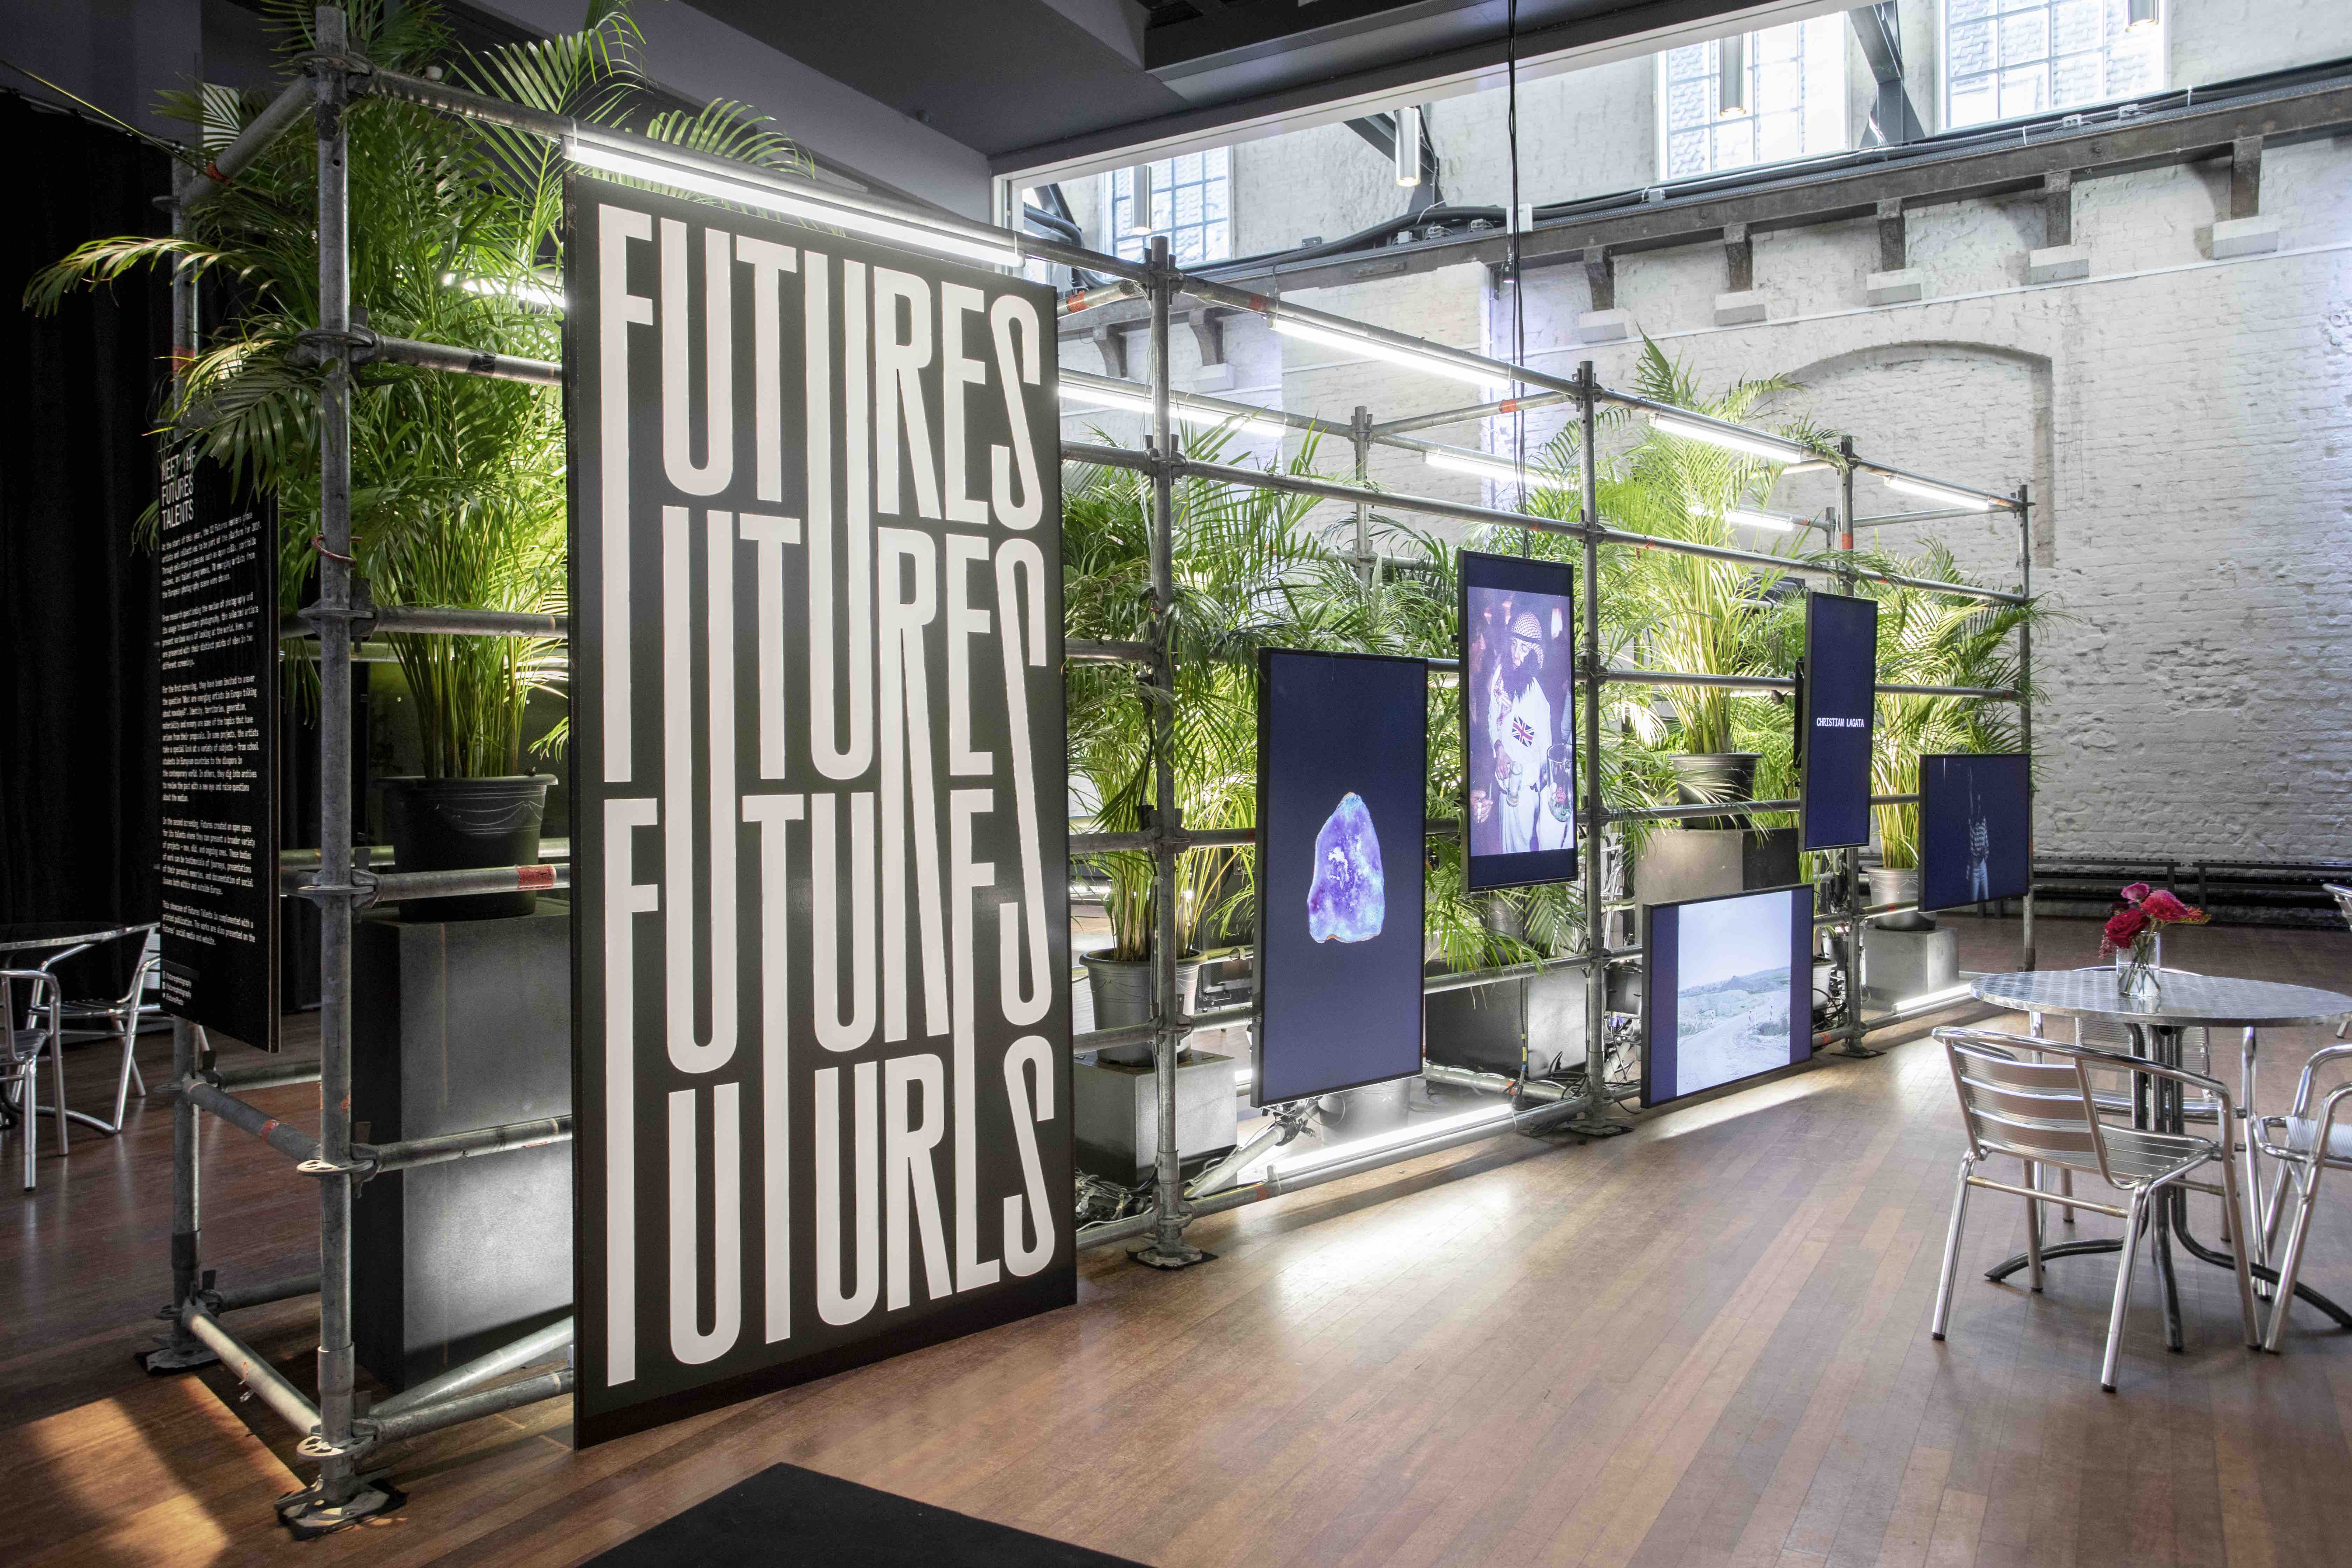 Futures' annual event at Unseen Amsterdam in 2019